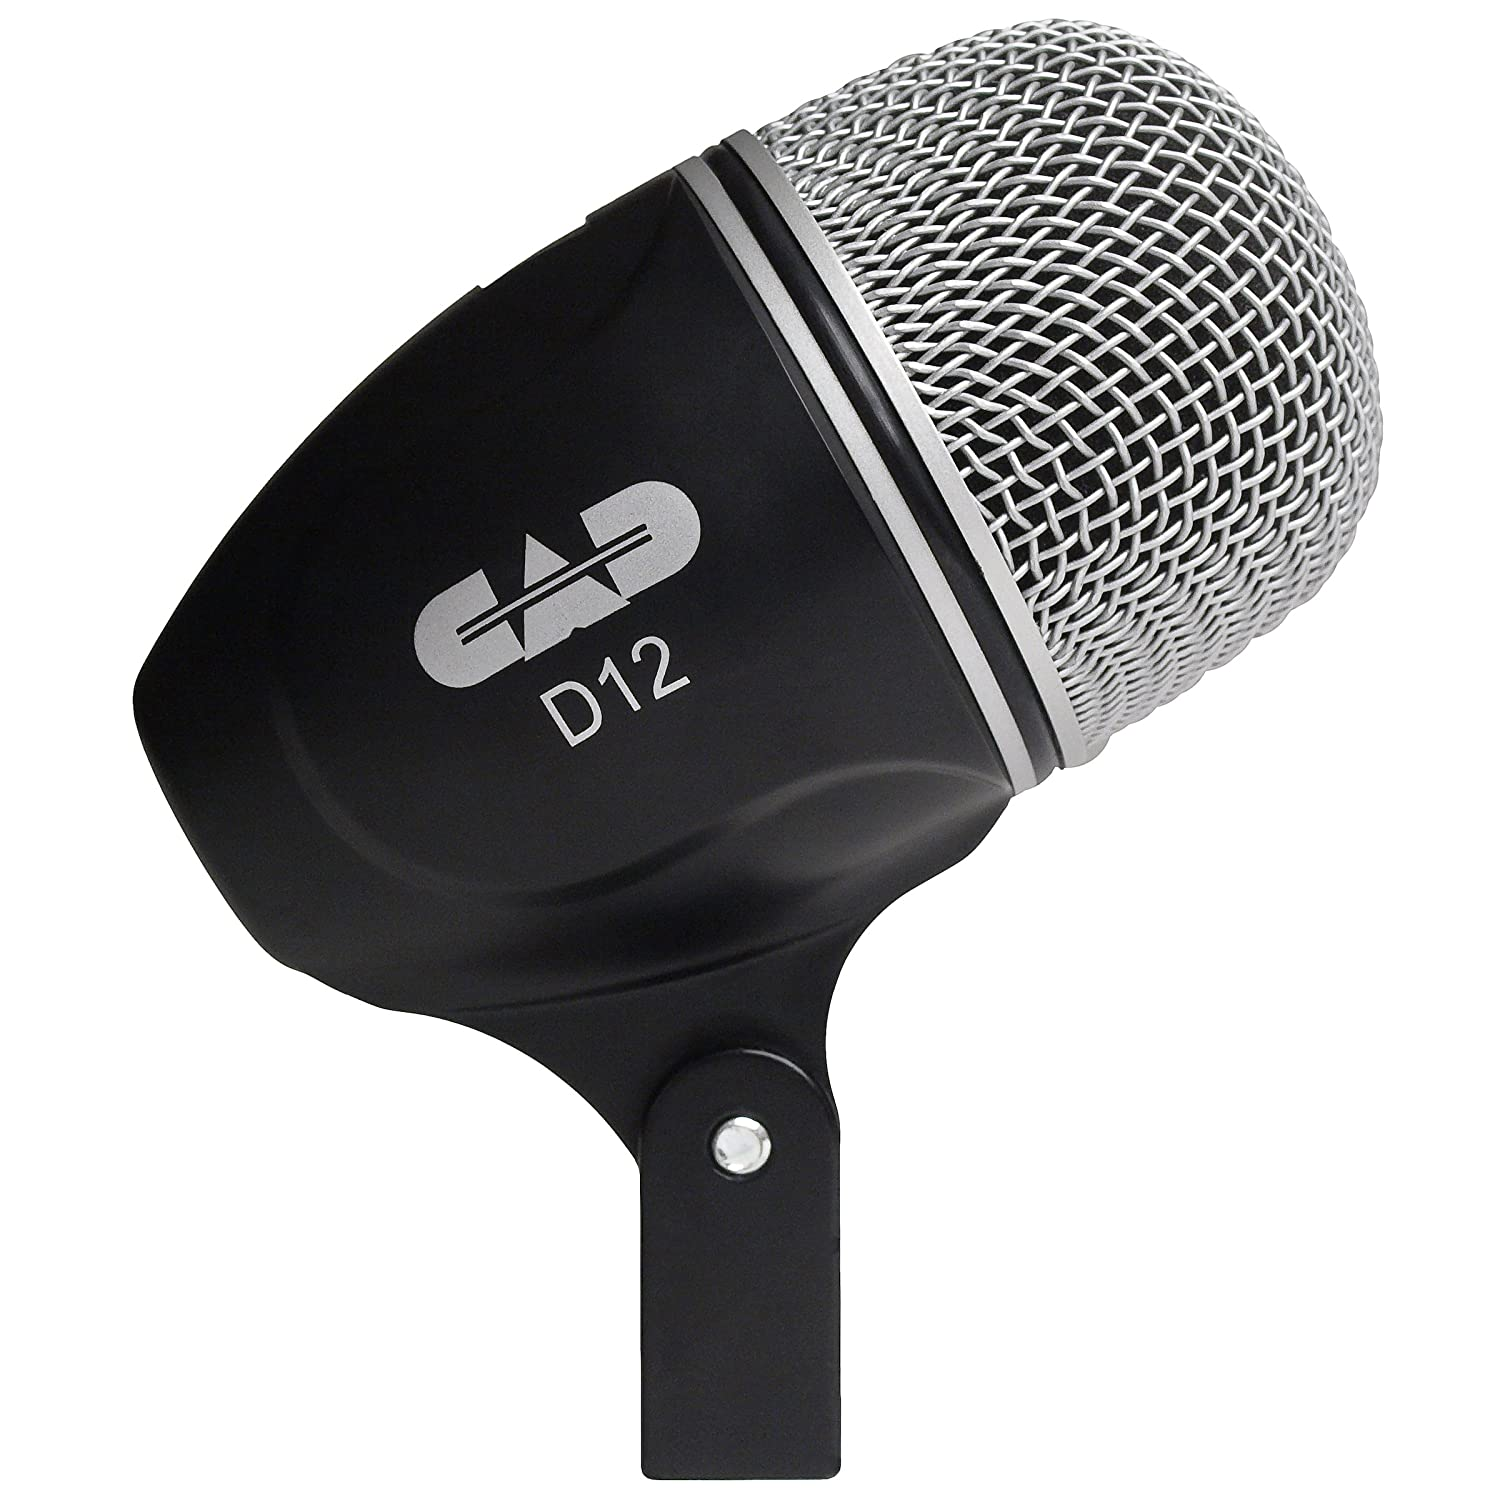 CAD Audio D12 Dynamic Microphone, Cardioid CAD Microphones